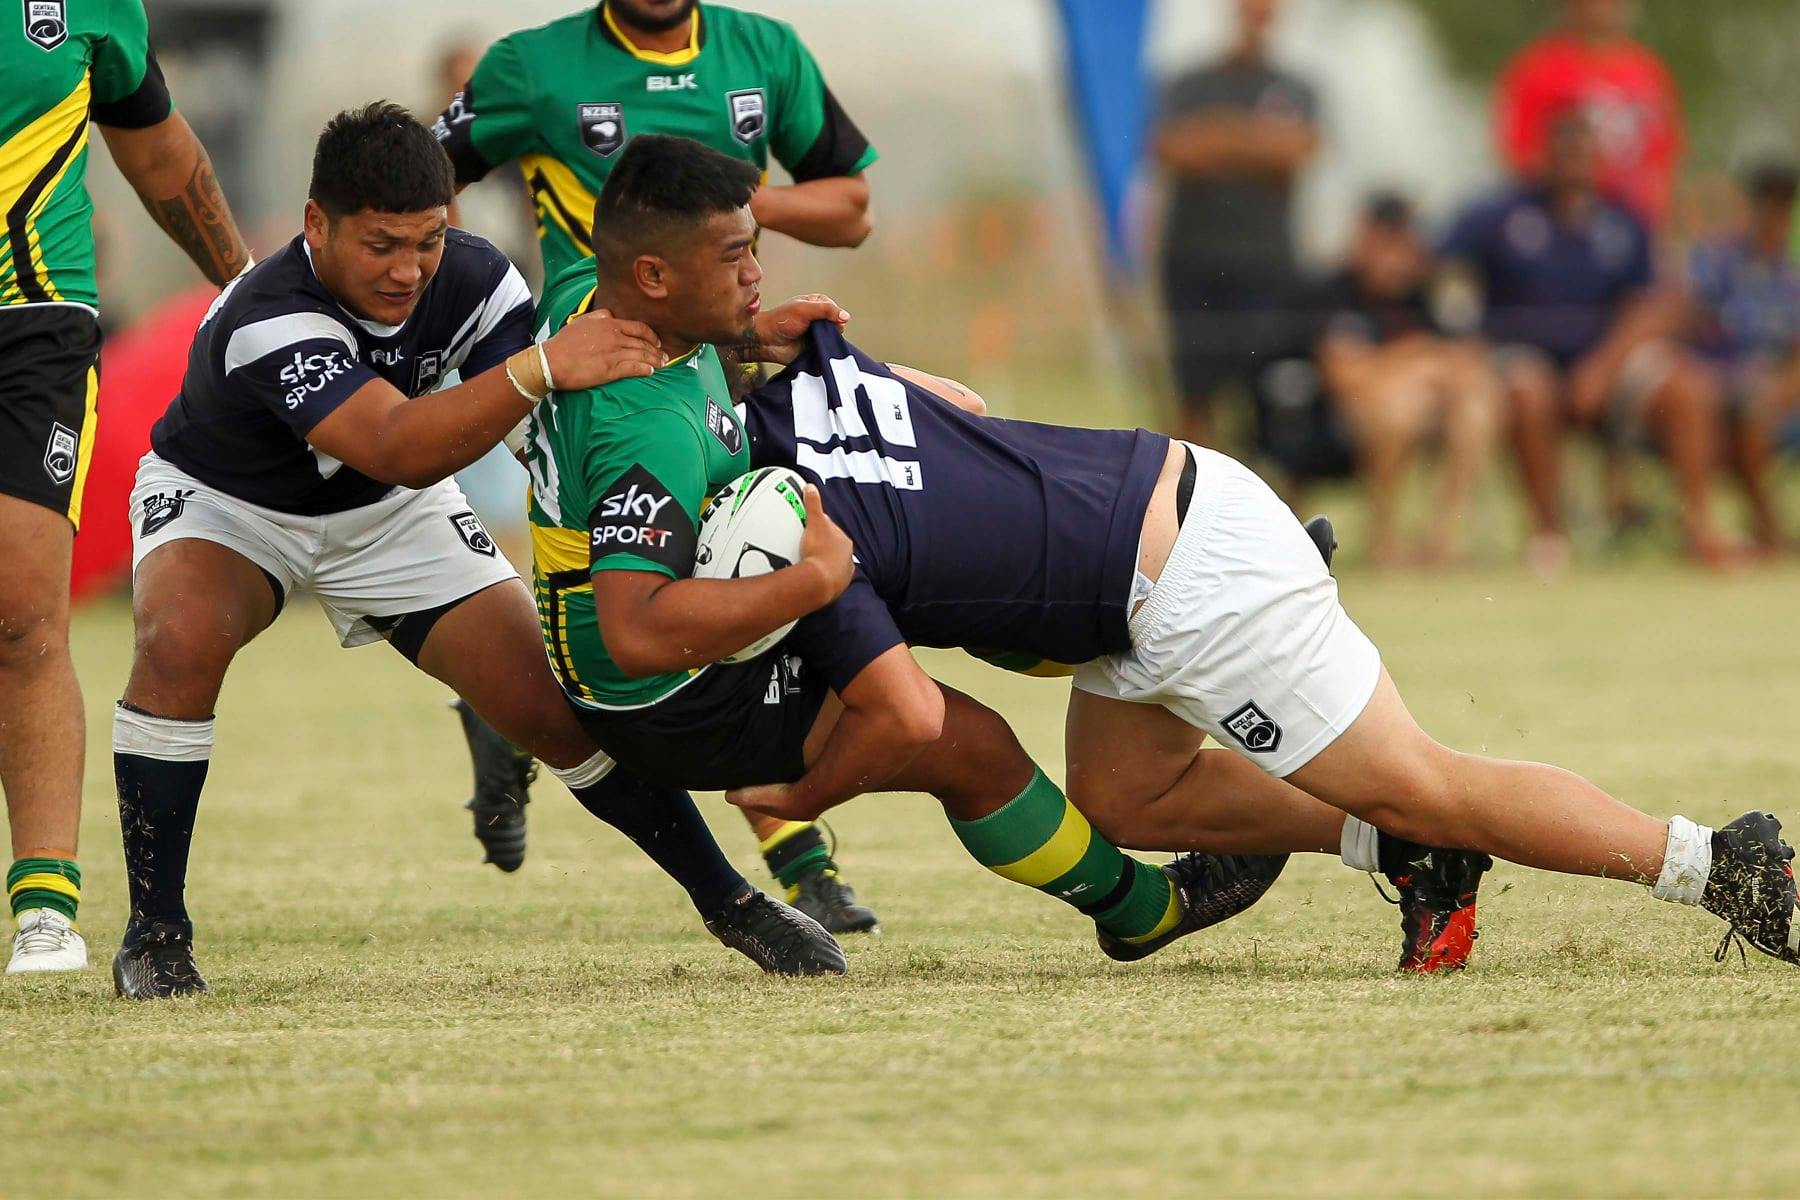 Revised NZRL National Under 20s draw